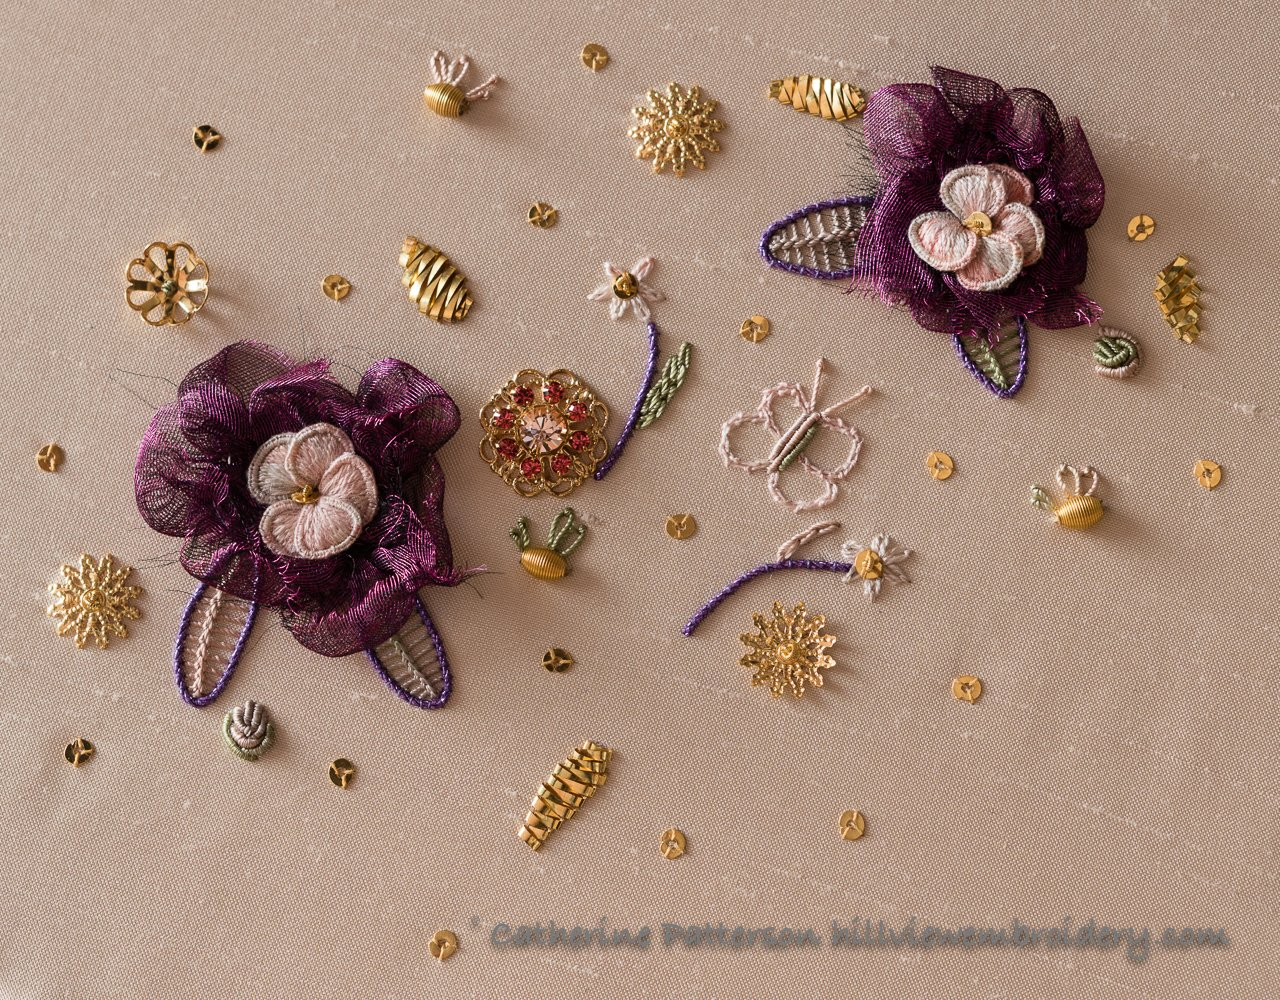 Delectable Morsels – Summer flowers